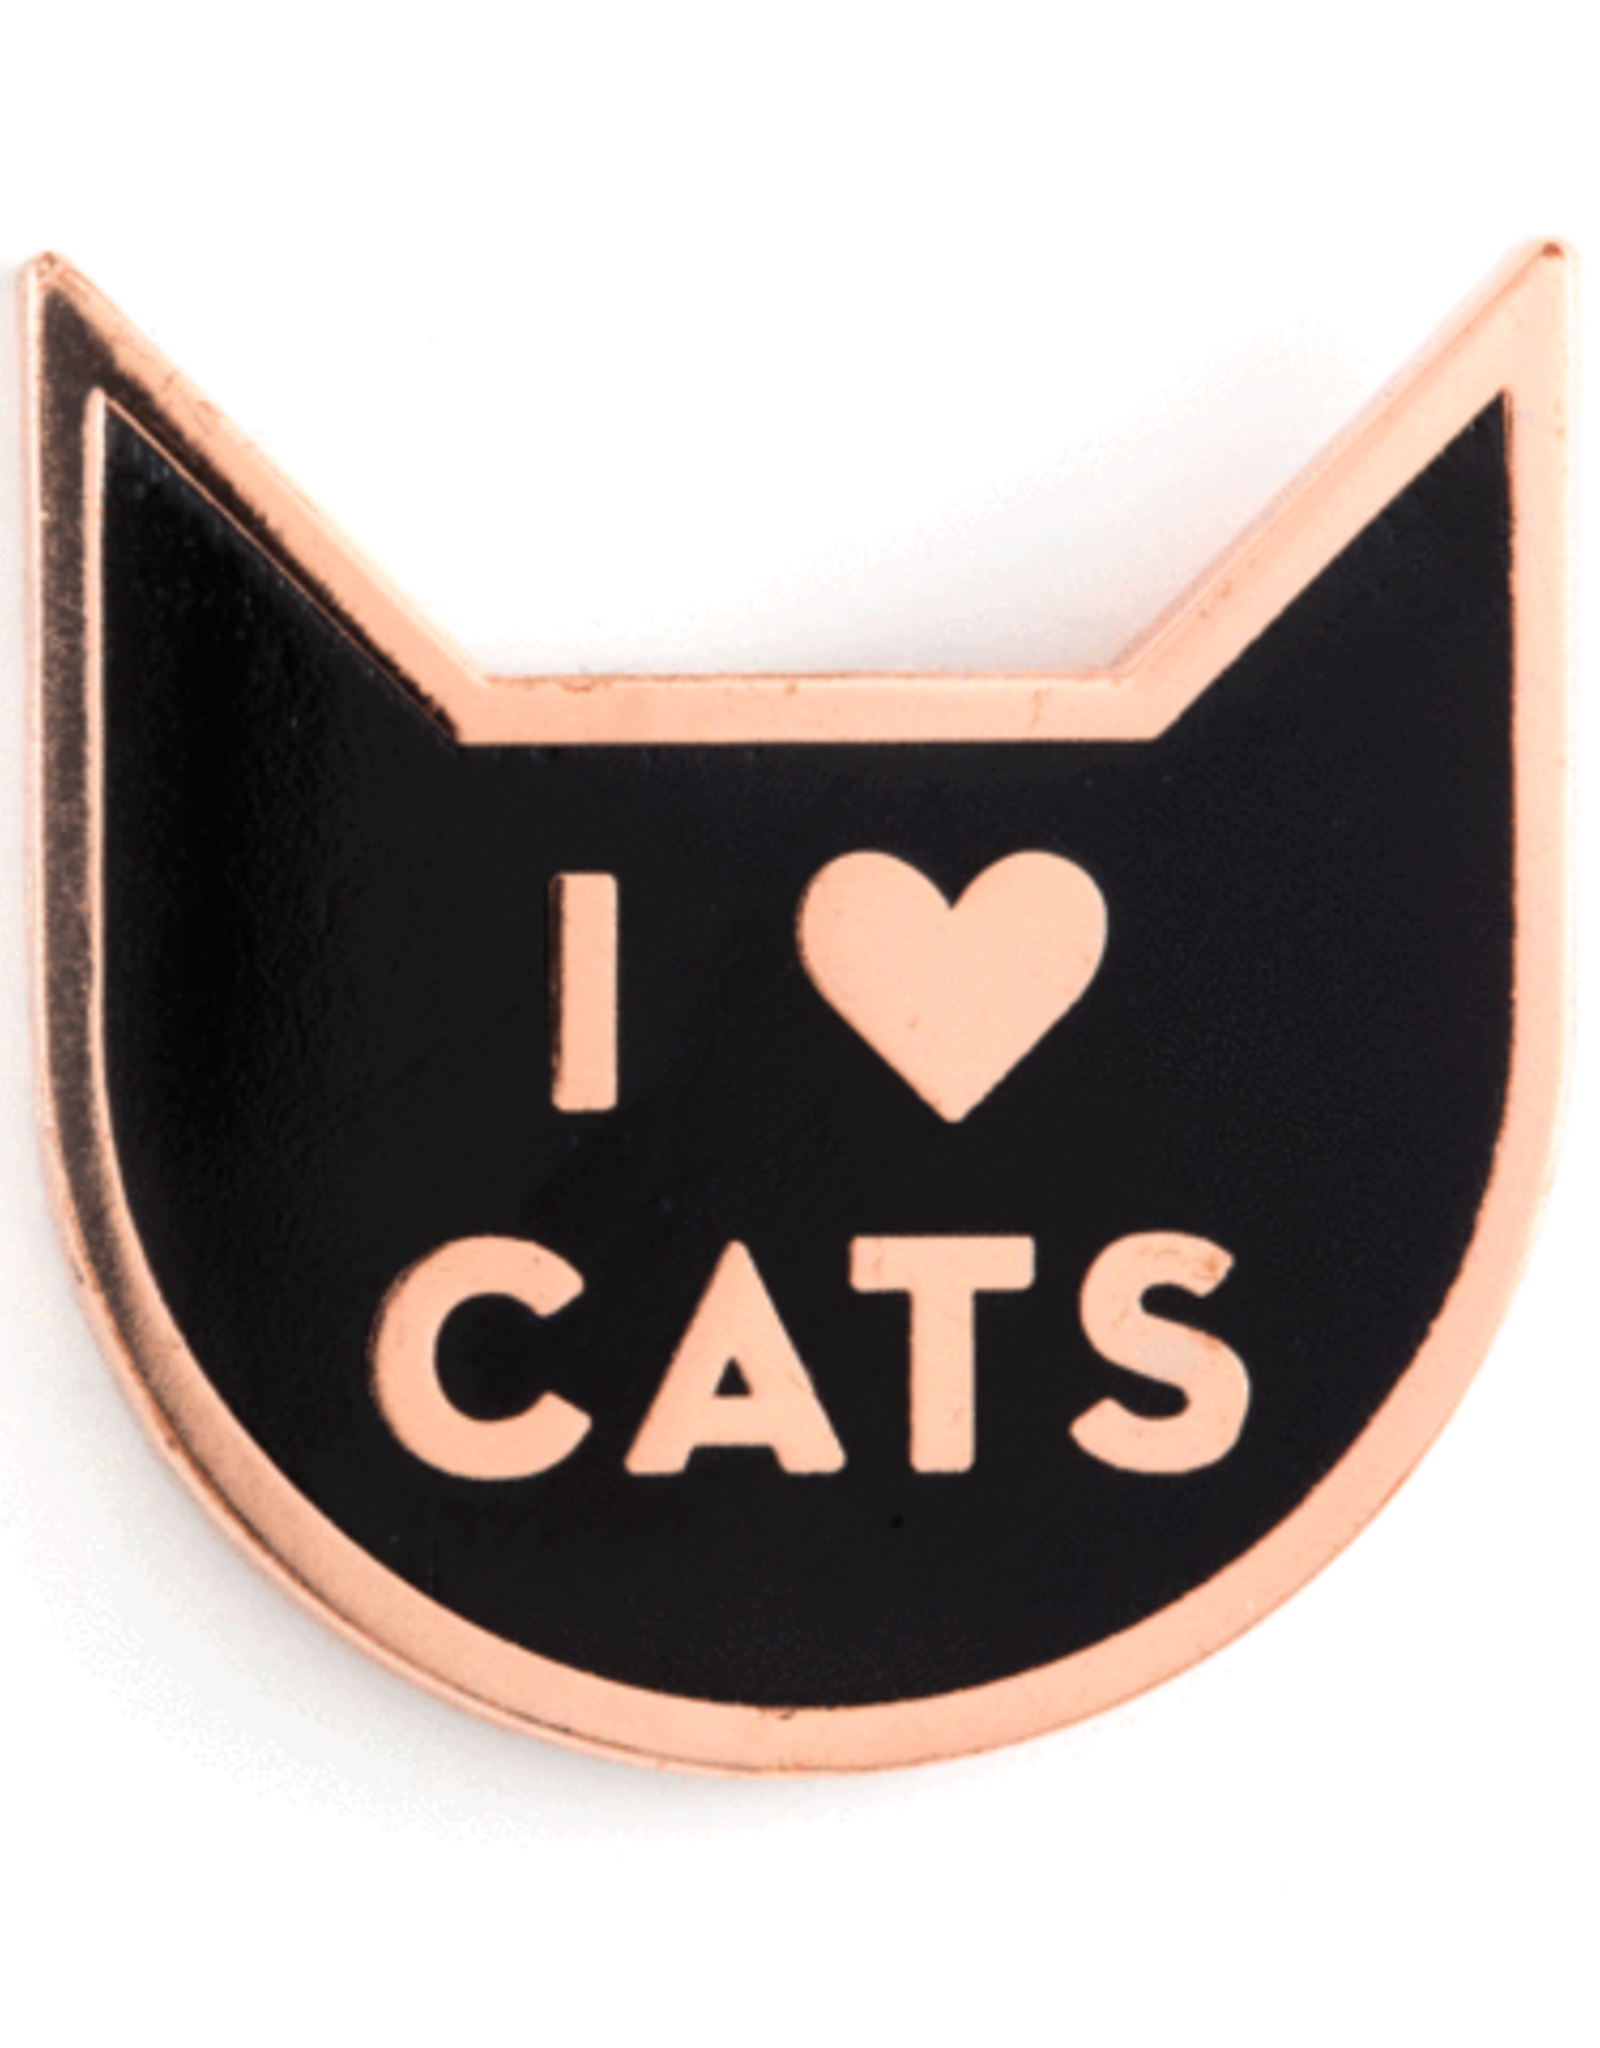 These Are Things Enamel Pin - I heart Cats